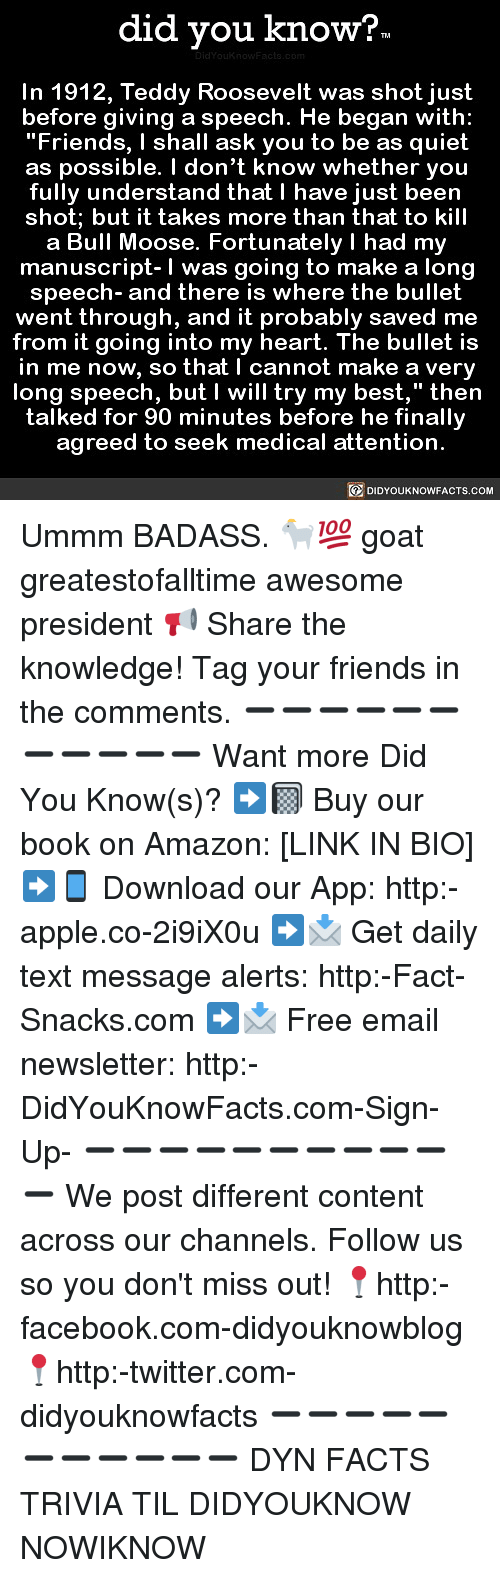 """Amazon, Apple, and Facebook: did you know?  In 1912, Teddy Roosevelt was shot just  before giving a speech. He began with:  """"Friends, I shall ask you to be as quiet  as possible. I don't know whether you  fully understand that I have just been  shot; but it takes more than that to kill  a Bull Moose. Fortunately I had my  manuscript-I was going to make a lono  speech- and there is where the bullet  went through, and it probably saved me  from it going into my heart. The bullet is  in me now, so that I cannot make a very  long speech, but I will try my best,"""" then  talked for 90 minutes before he finallv  agreed to seek medical attention  DIDYOUKNOWFACTS.COM Ummm BADASS. 🐐💯 goat greatestofalltime awesome president 📢 Share the knowledge! Tag your friends in the comments. ➖➖➖➖➖➖➖➖➖➖➖ Want more Did You Know(s)? ➡📓 Buy our book on Amazon: [LINK IN BIO] ➡📱 Download our App: http:-apple.co-2i9iX0u ➡📩 Get daily text message alerts: http:-Fact-Snacks.com ➡📩 Free email newsletter: http:-DidYouKnowFacts.com-Sign-Up- ➖➖➖➖➖➖➖➖➖➖➖ We post different content across our channels. Follow us so you don't miss out! 📍http:-facebook.com-didyouknowblog 📍http:-twitter.com-didyouknowfacts ➖➖➖➖➖➖➖➖➖➖➖ DYN FACTS TRIVIA TIL DIDYOUKNOW NOWIKNOW"""